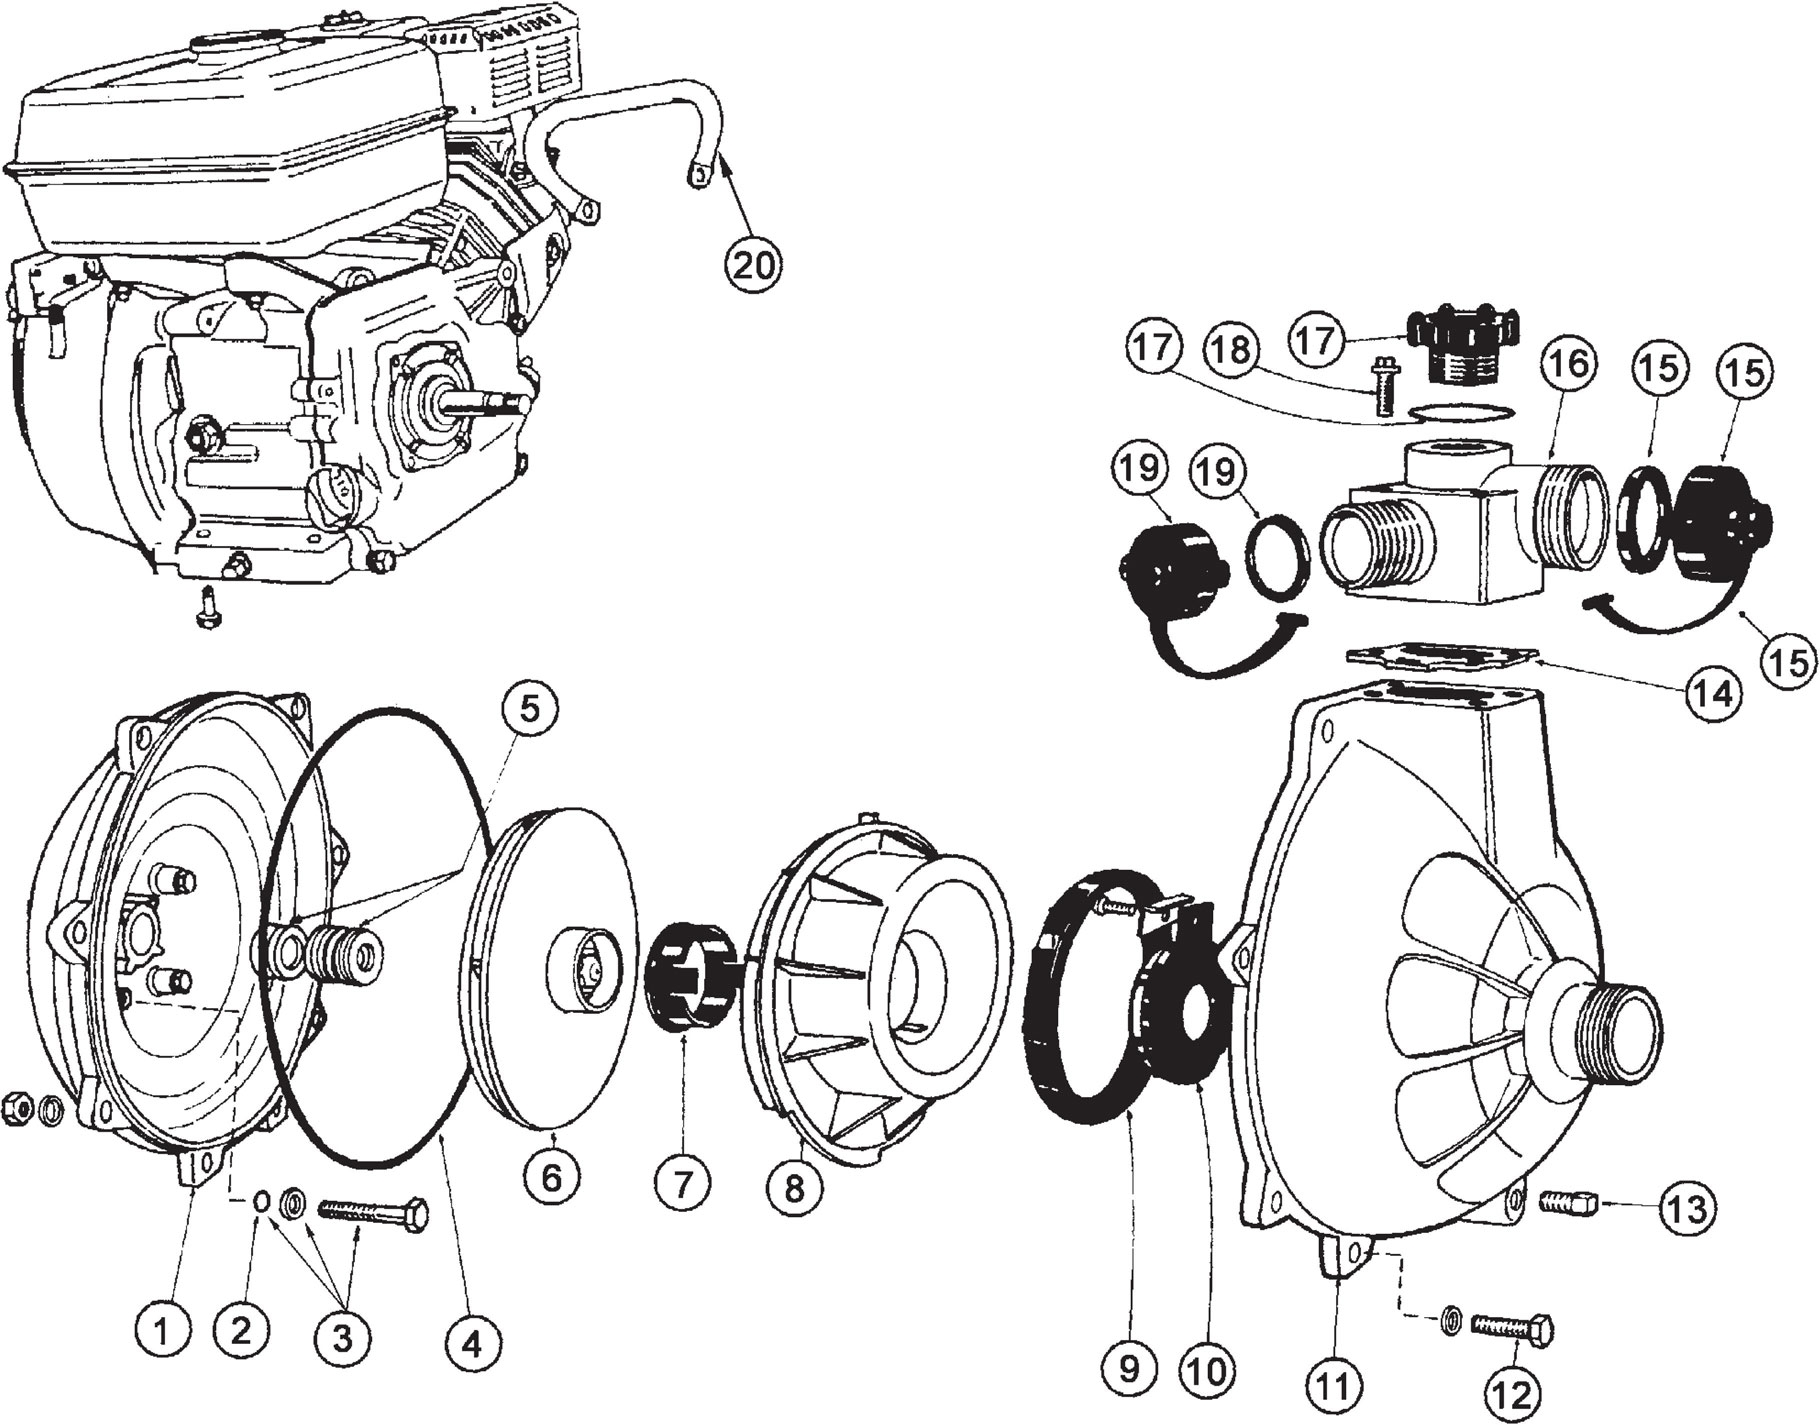 Honda Gx160 Electric Start Wiring Diagram